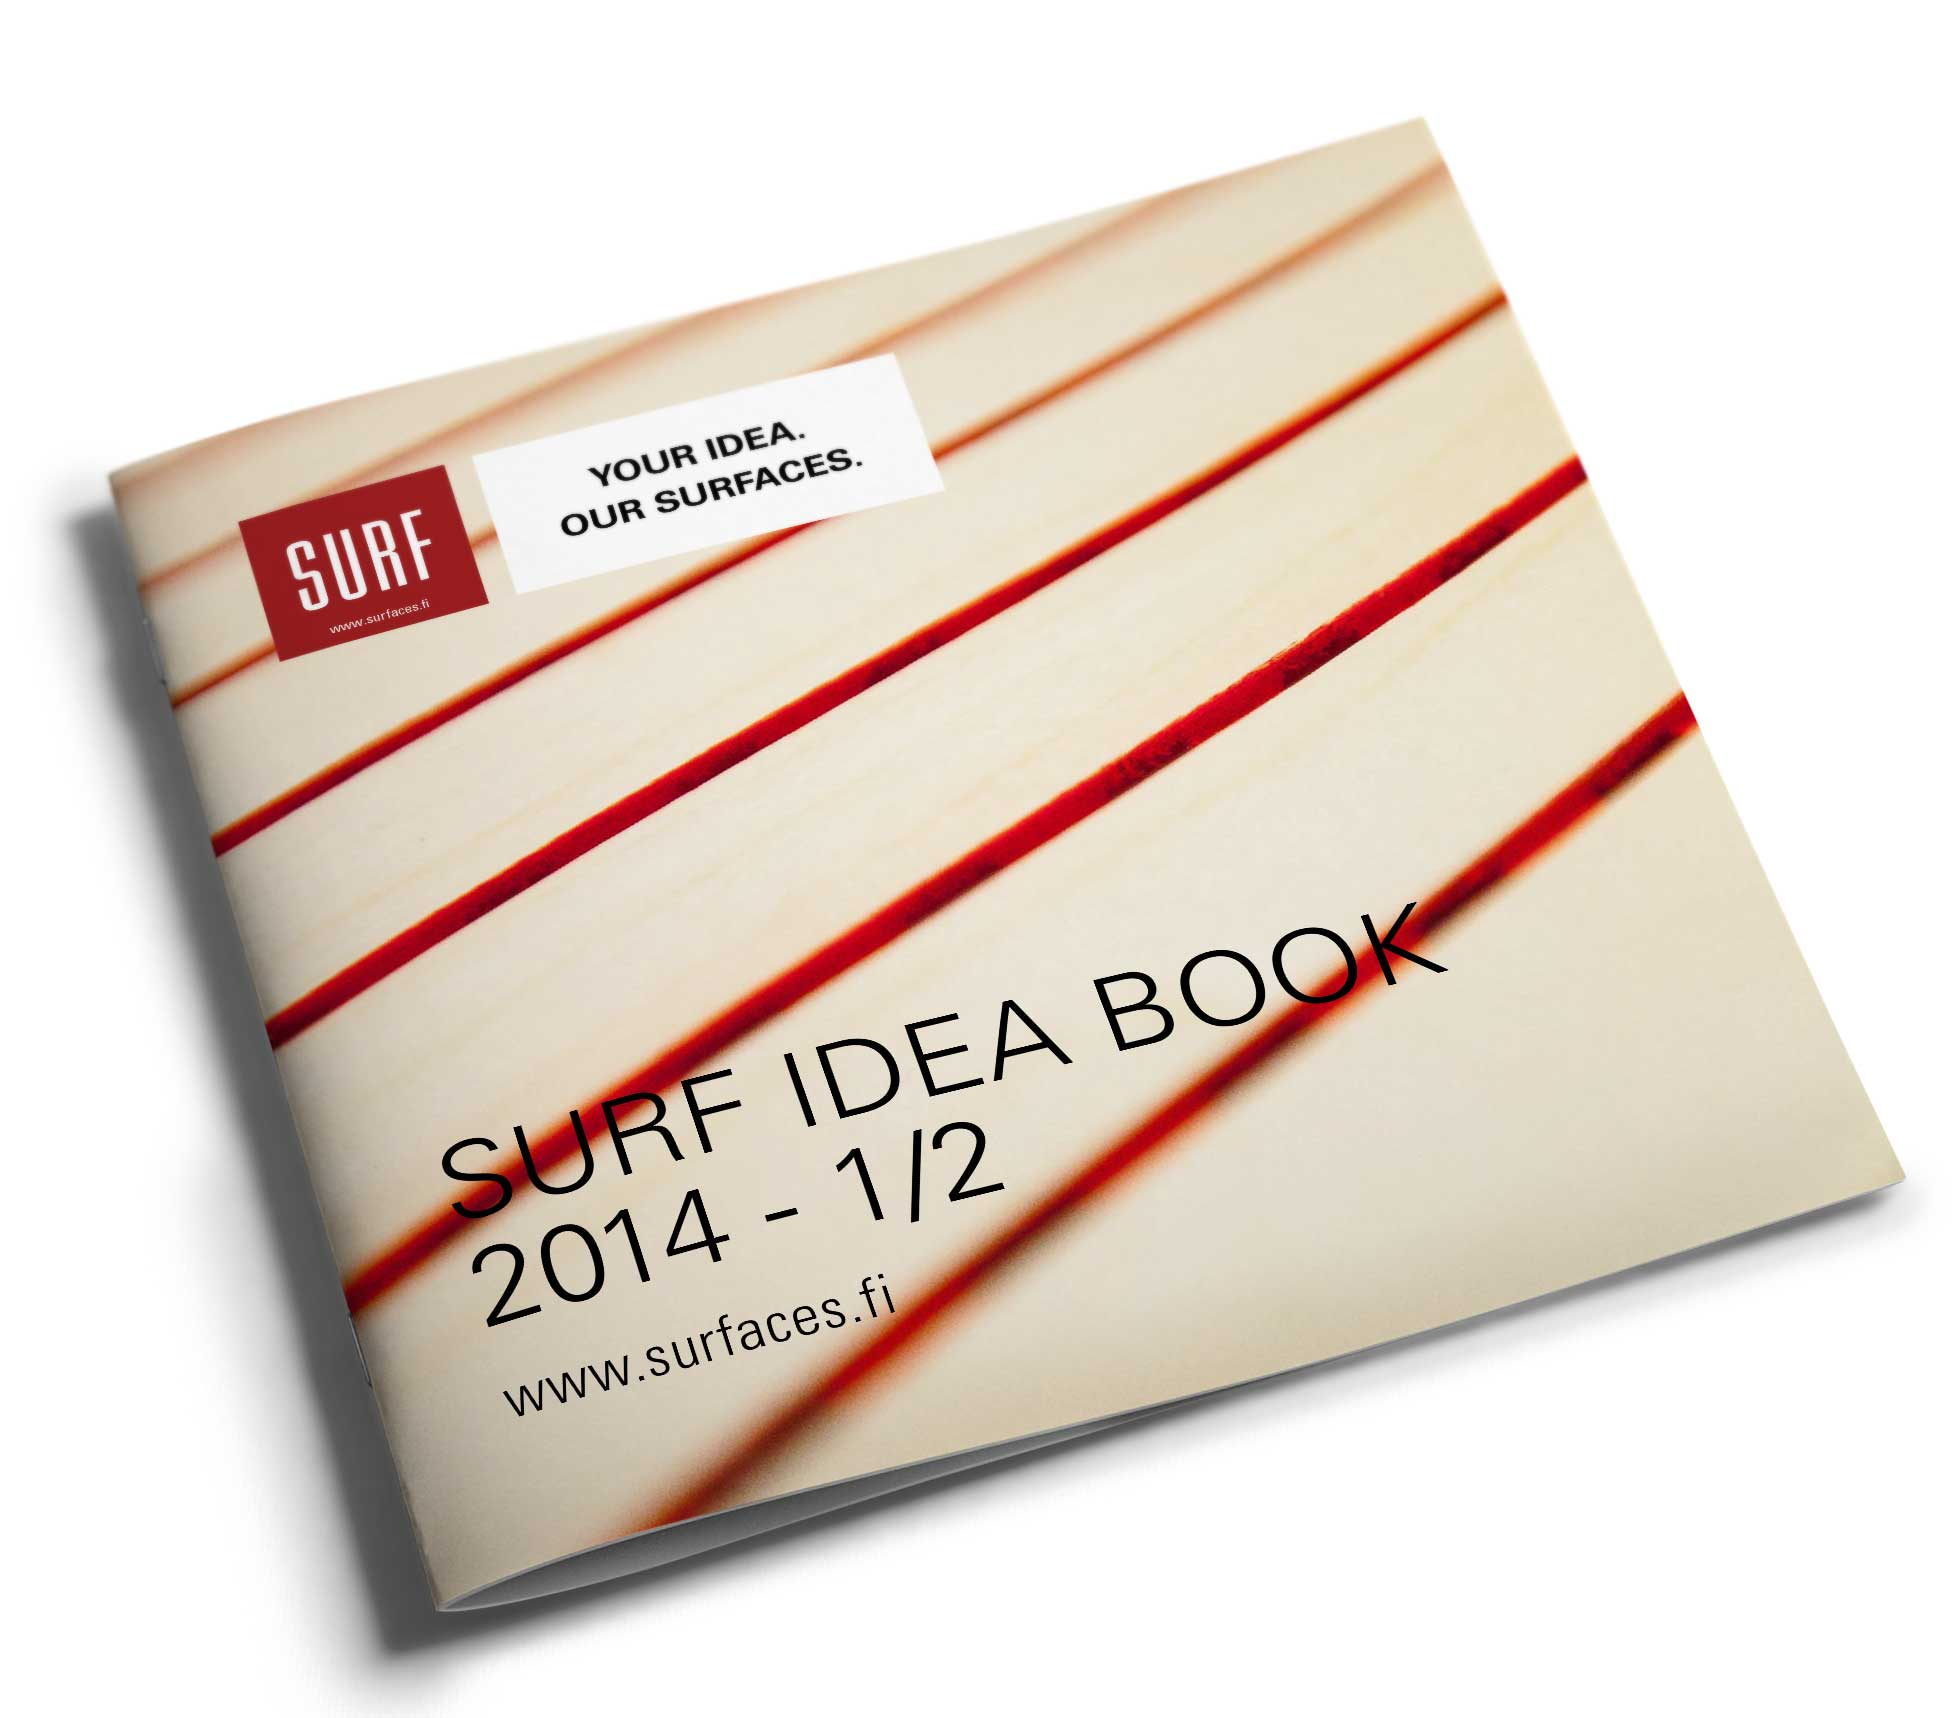 SURF Idea Book 2013